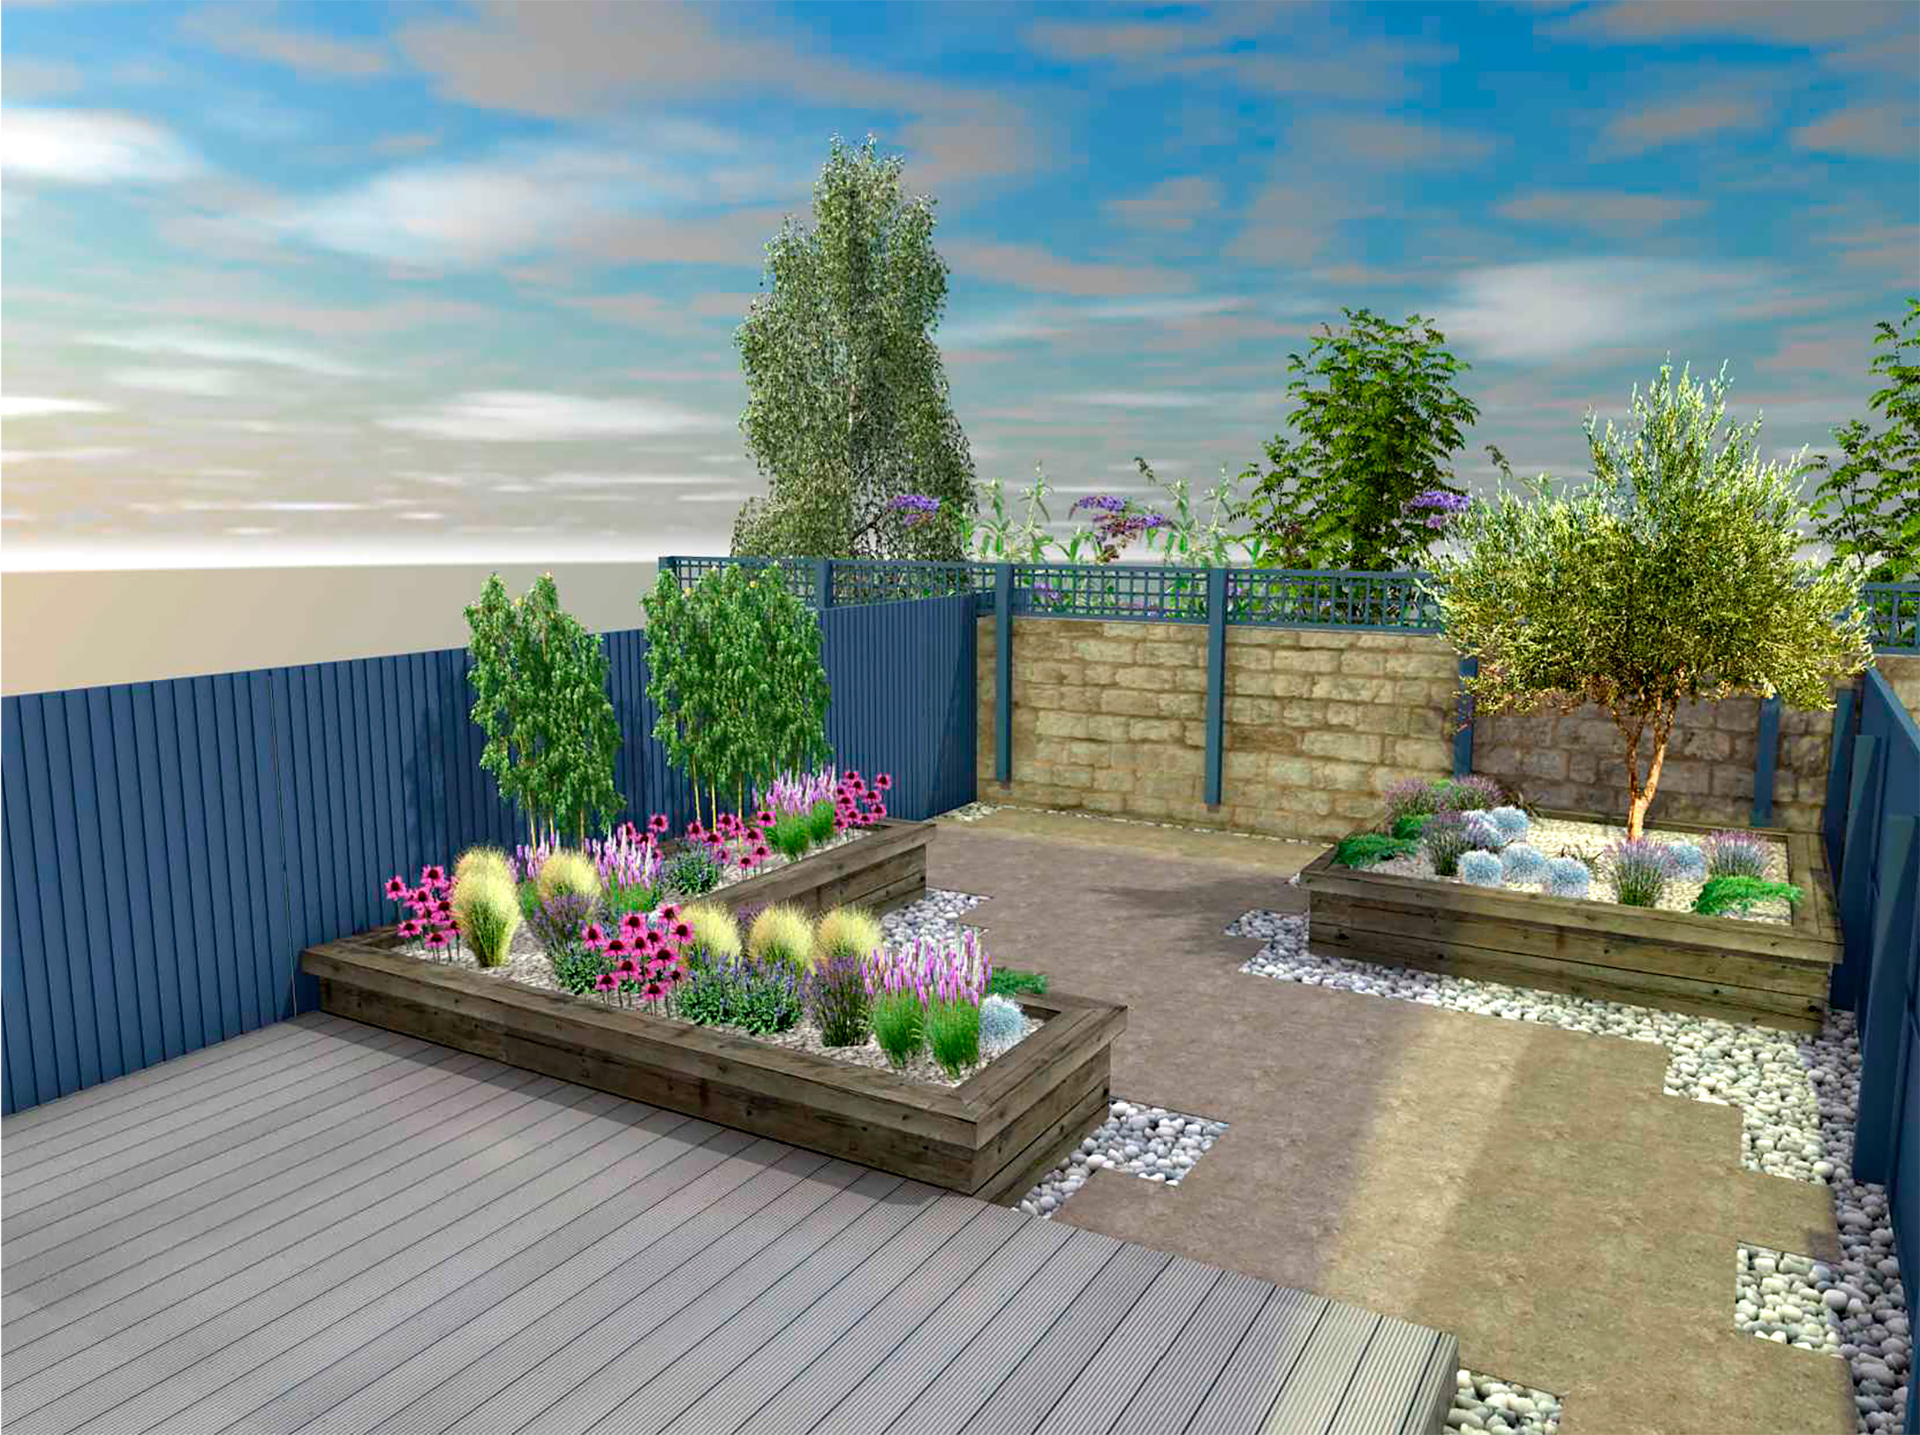 Project | Yorkshire Gardens